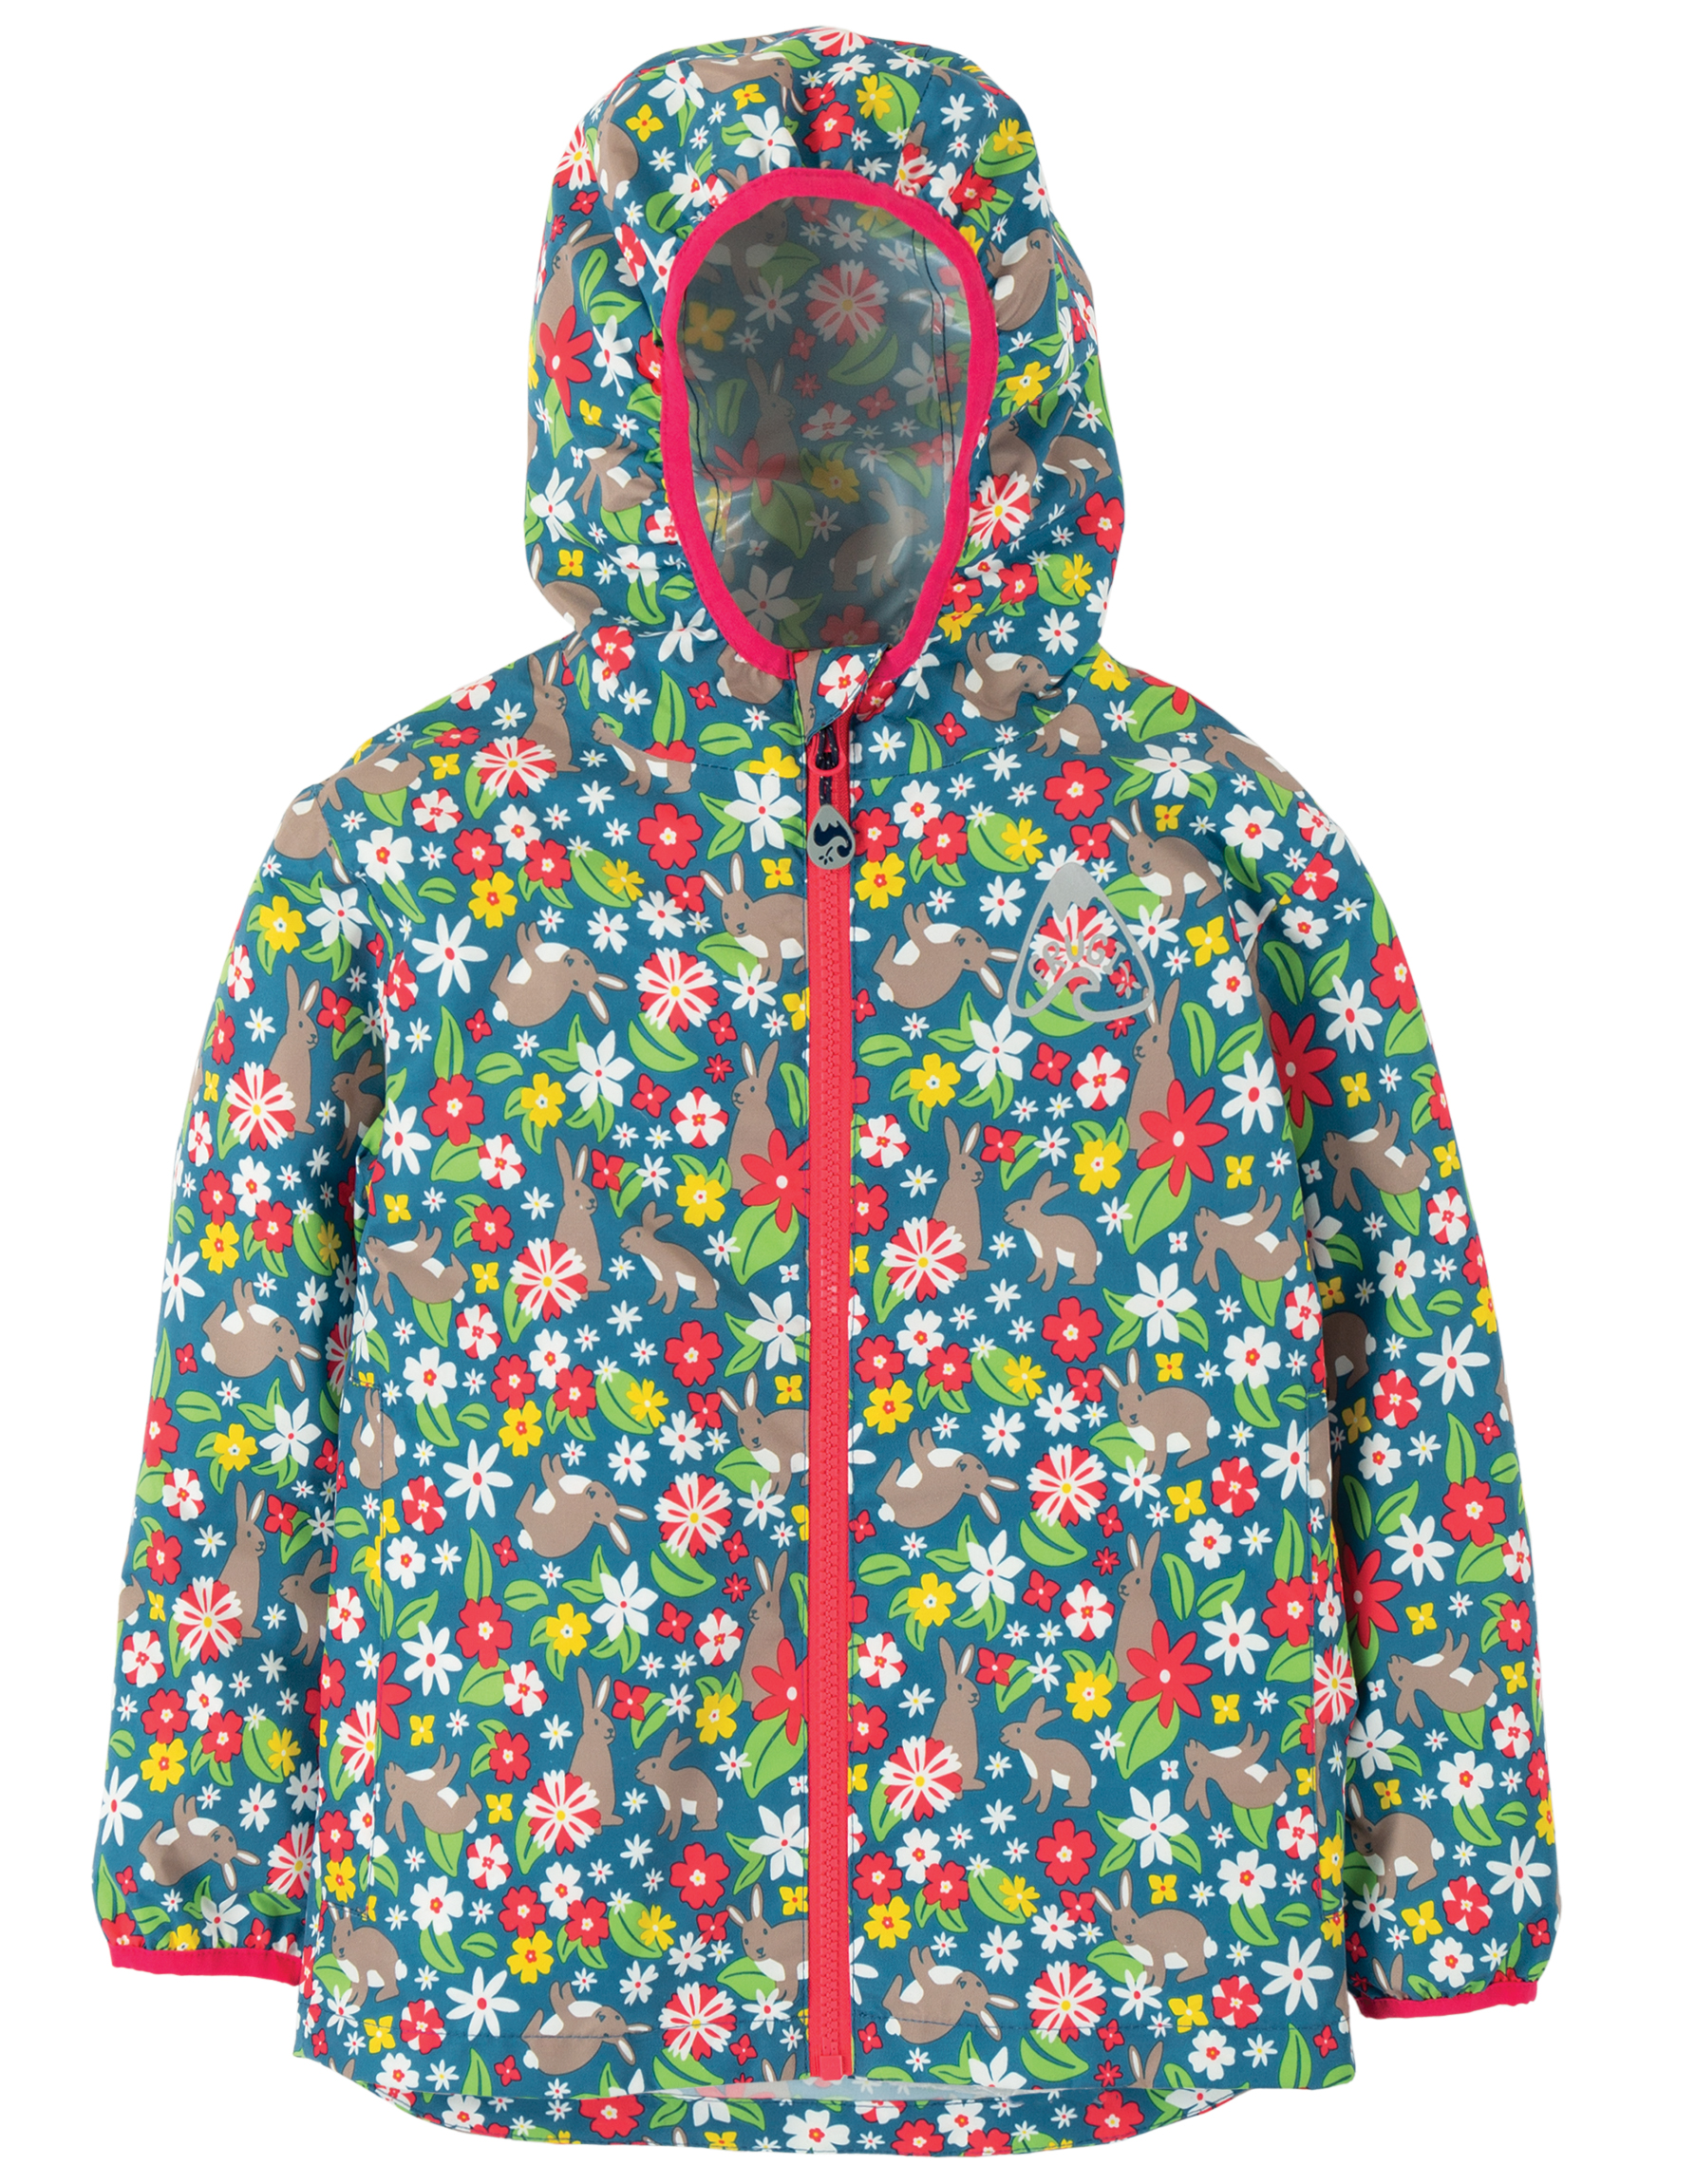 Frugi - Rain or Shine Jacket - Rabbit Fields